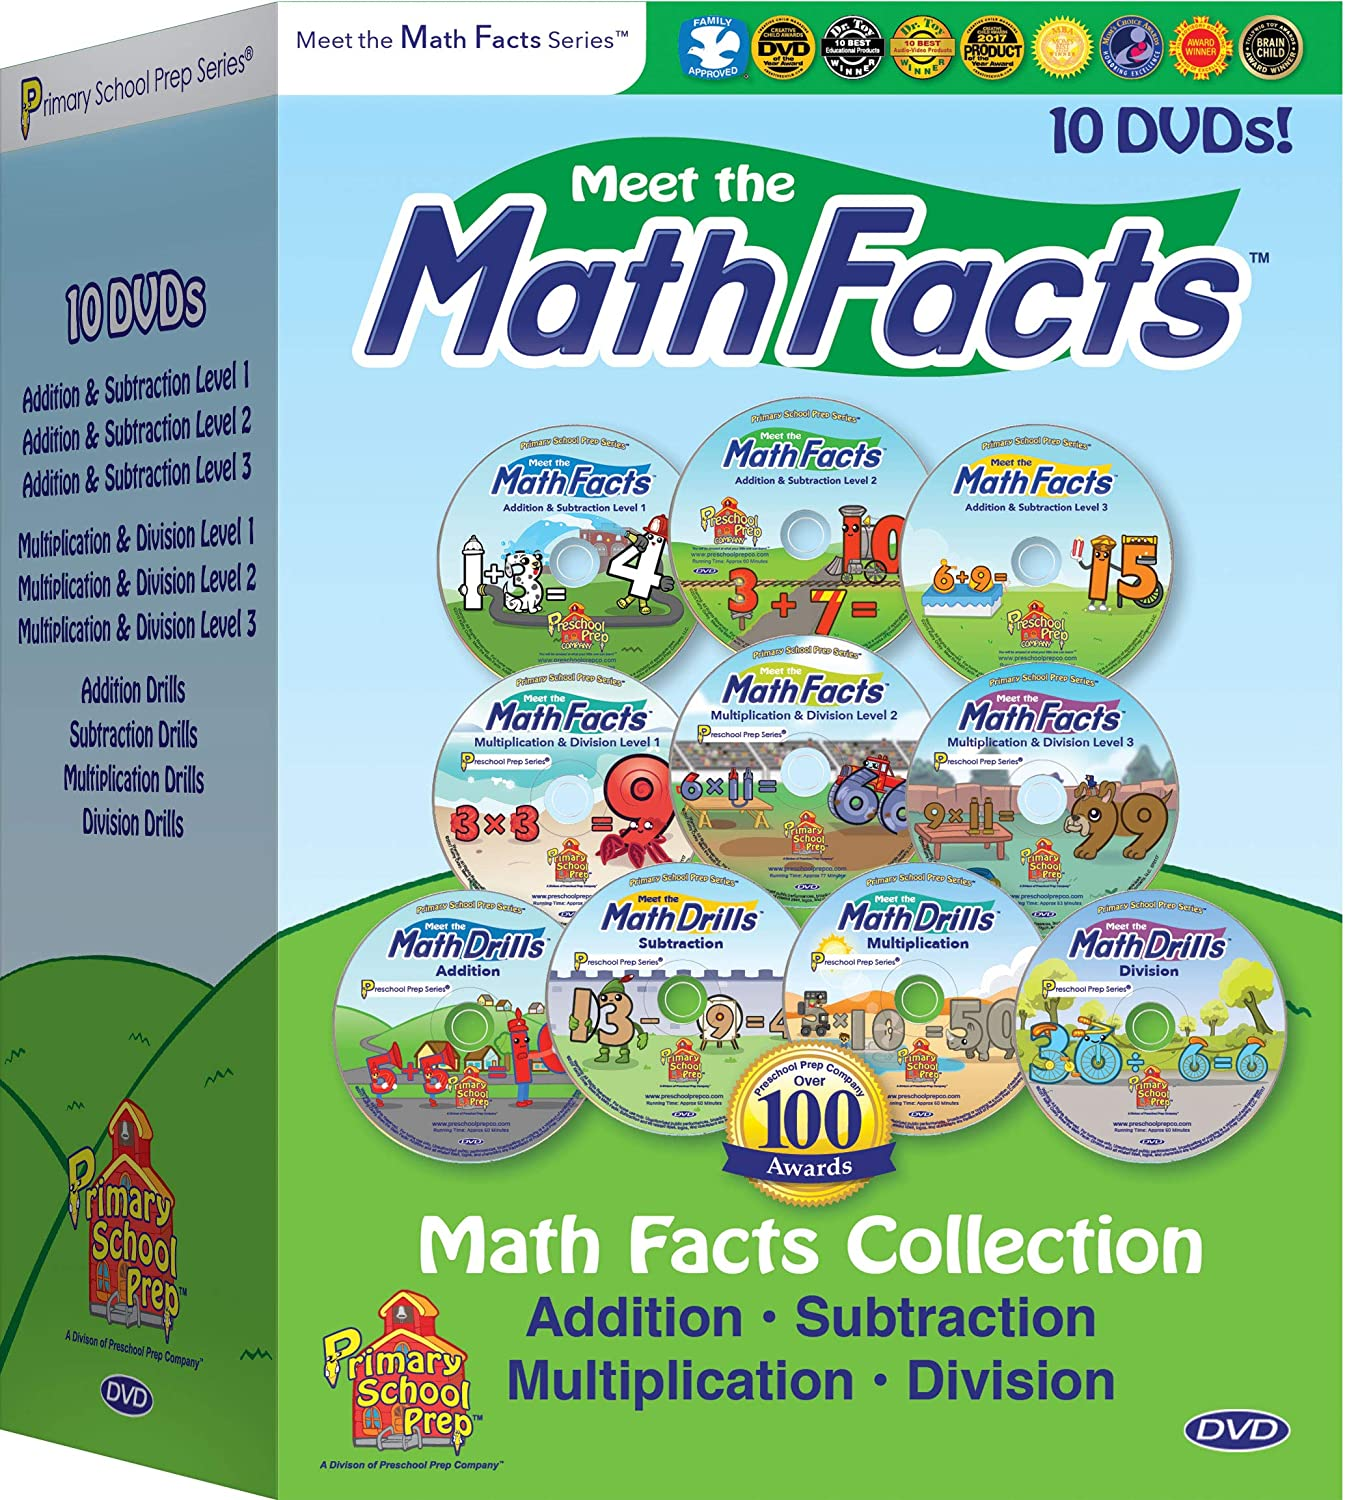 Amazon.com: Meet the Math Facts 10 DVD Set - Addition, Subtraction ...